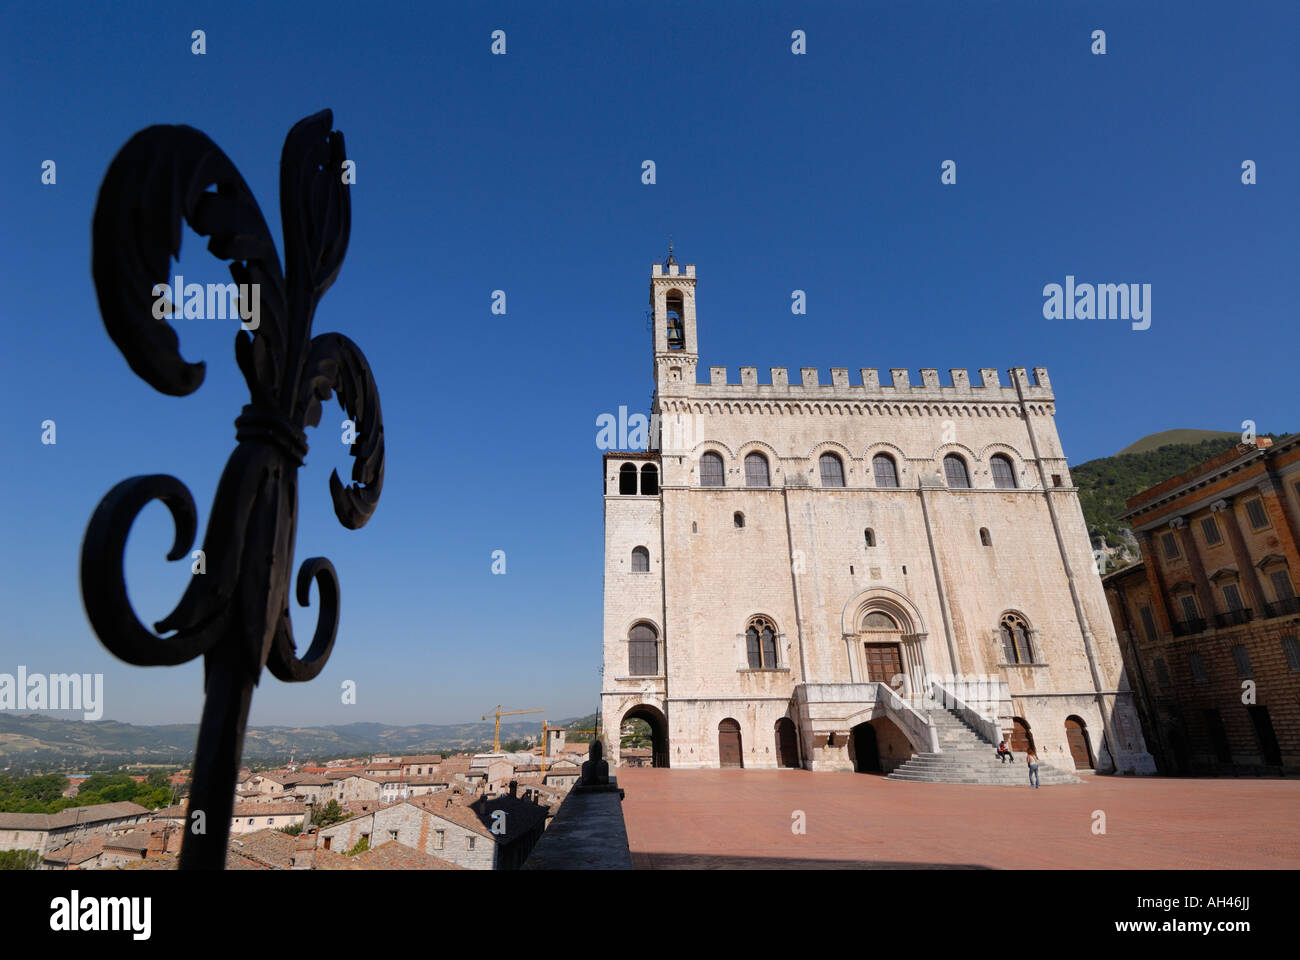 Gubbio Umbria Italy Palazzo dei Consoli and the wrought iron Fleur de Lys a motif found throughout the town - Stock Image